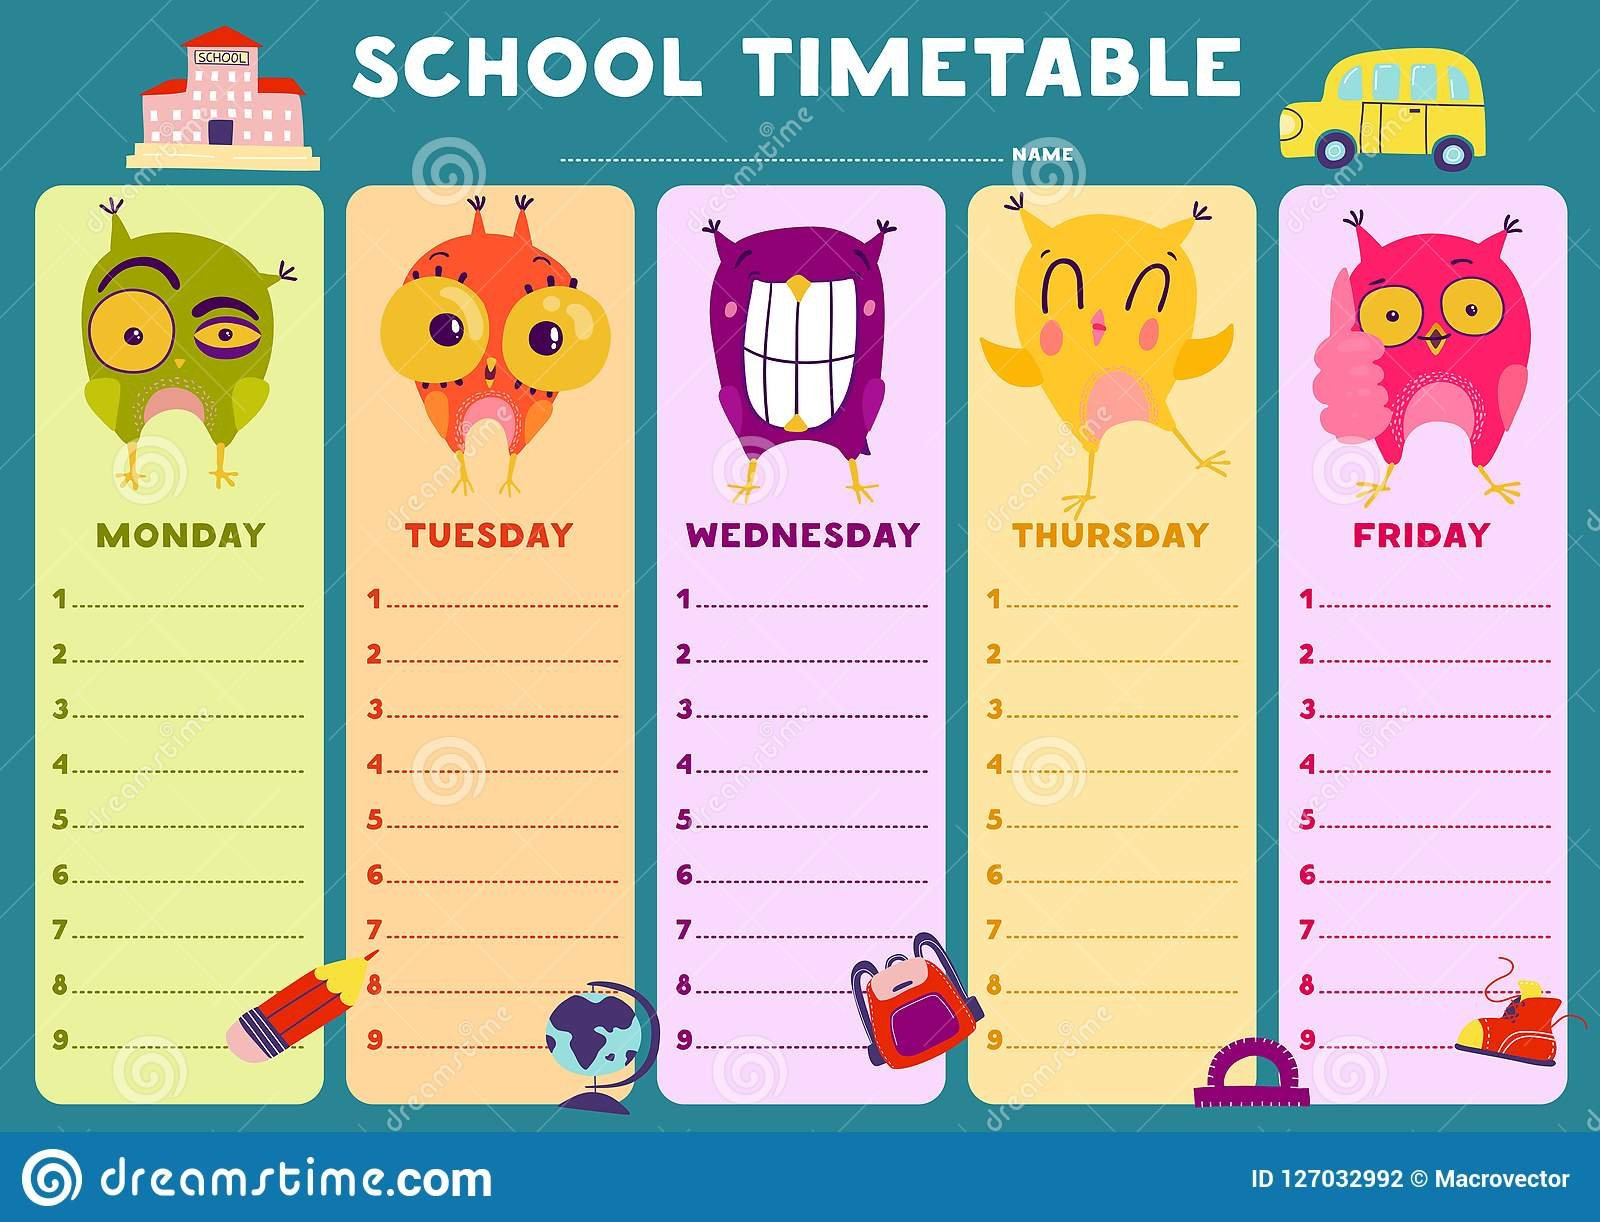 Owl Timetable Template Stock Vector. Illustration Of Blank Monday To Friday Timetable